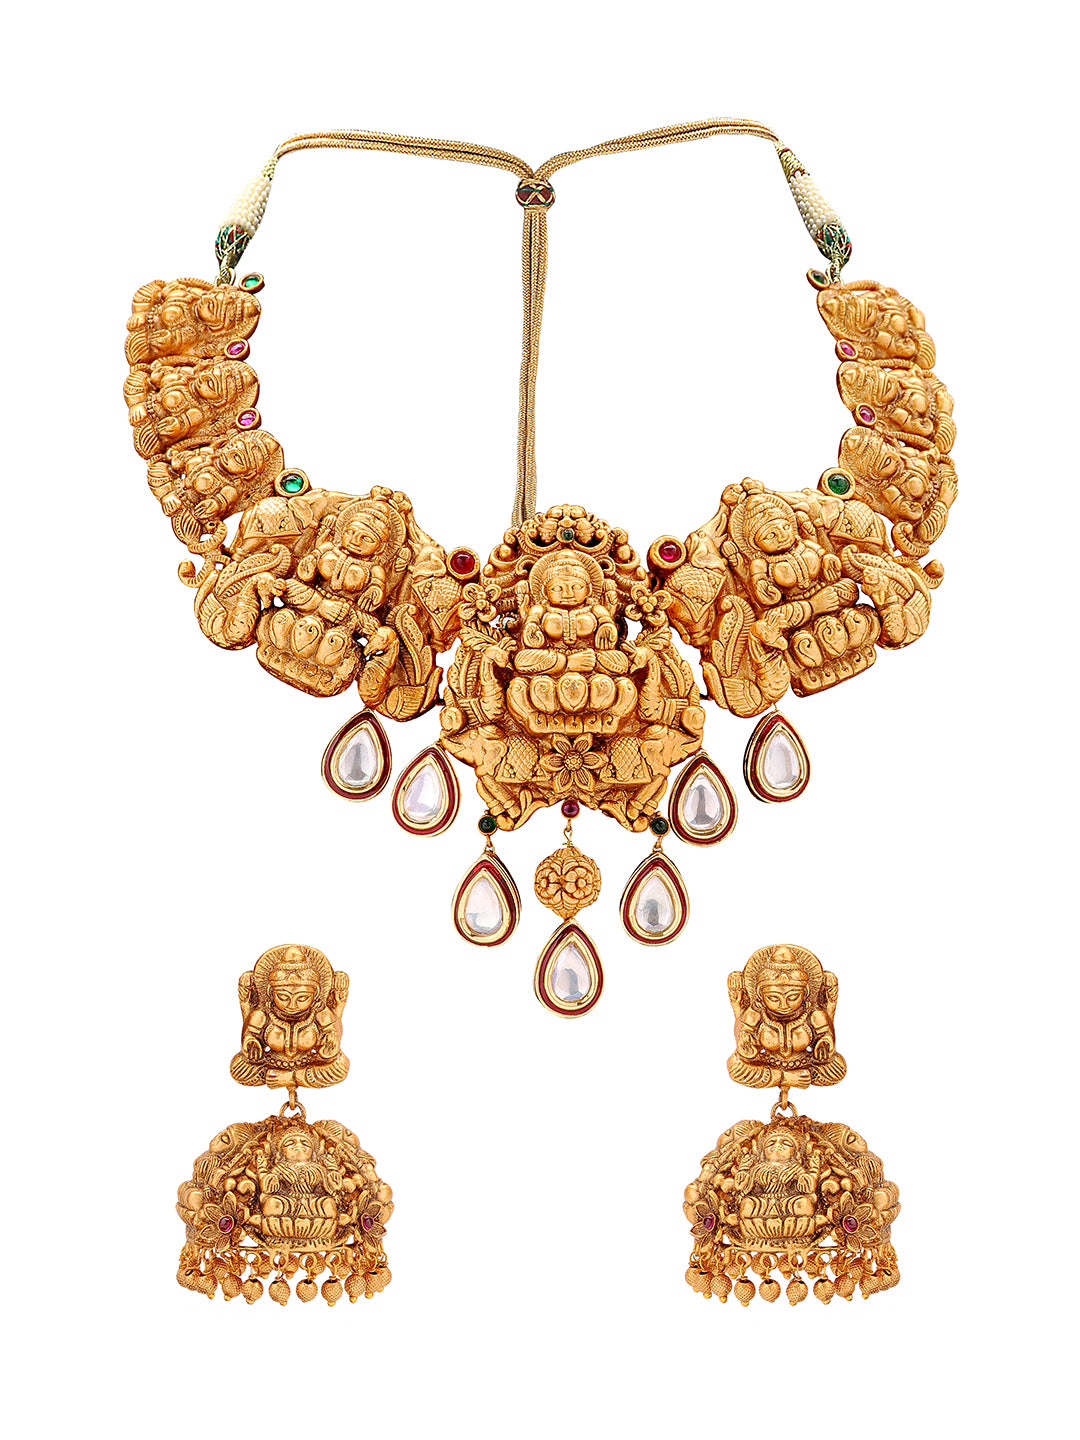 Joules By Radhika Gold Plated Royal Temple Lakshmi Design Choker Necklace Set-JOULES BY RADHIKA-Necklace Set